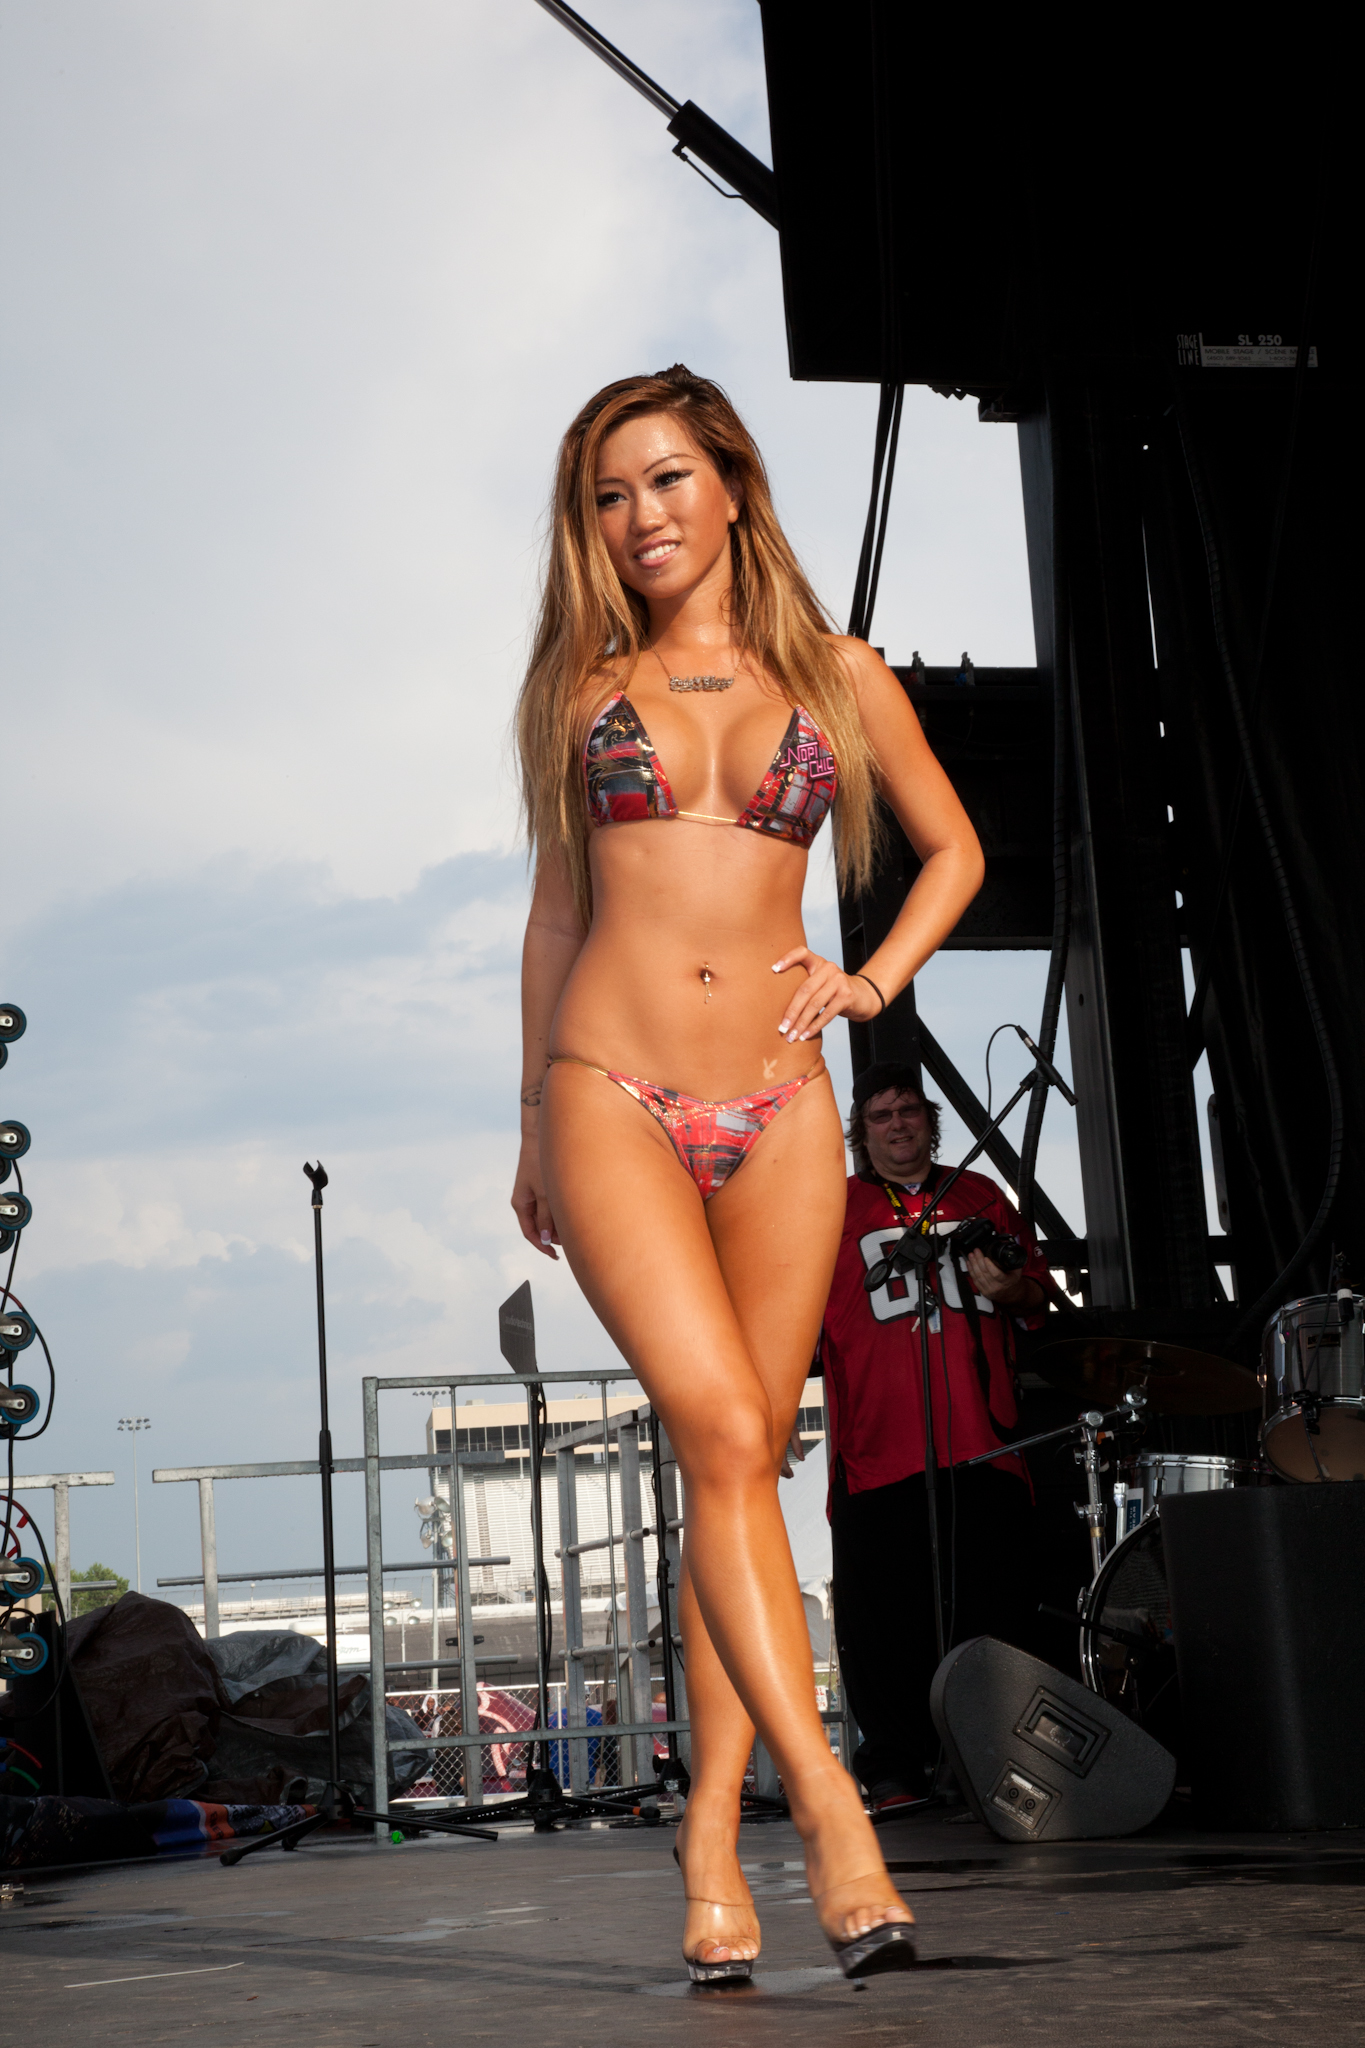 Bikini Contest Hot 119